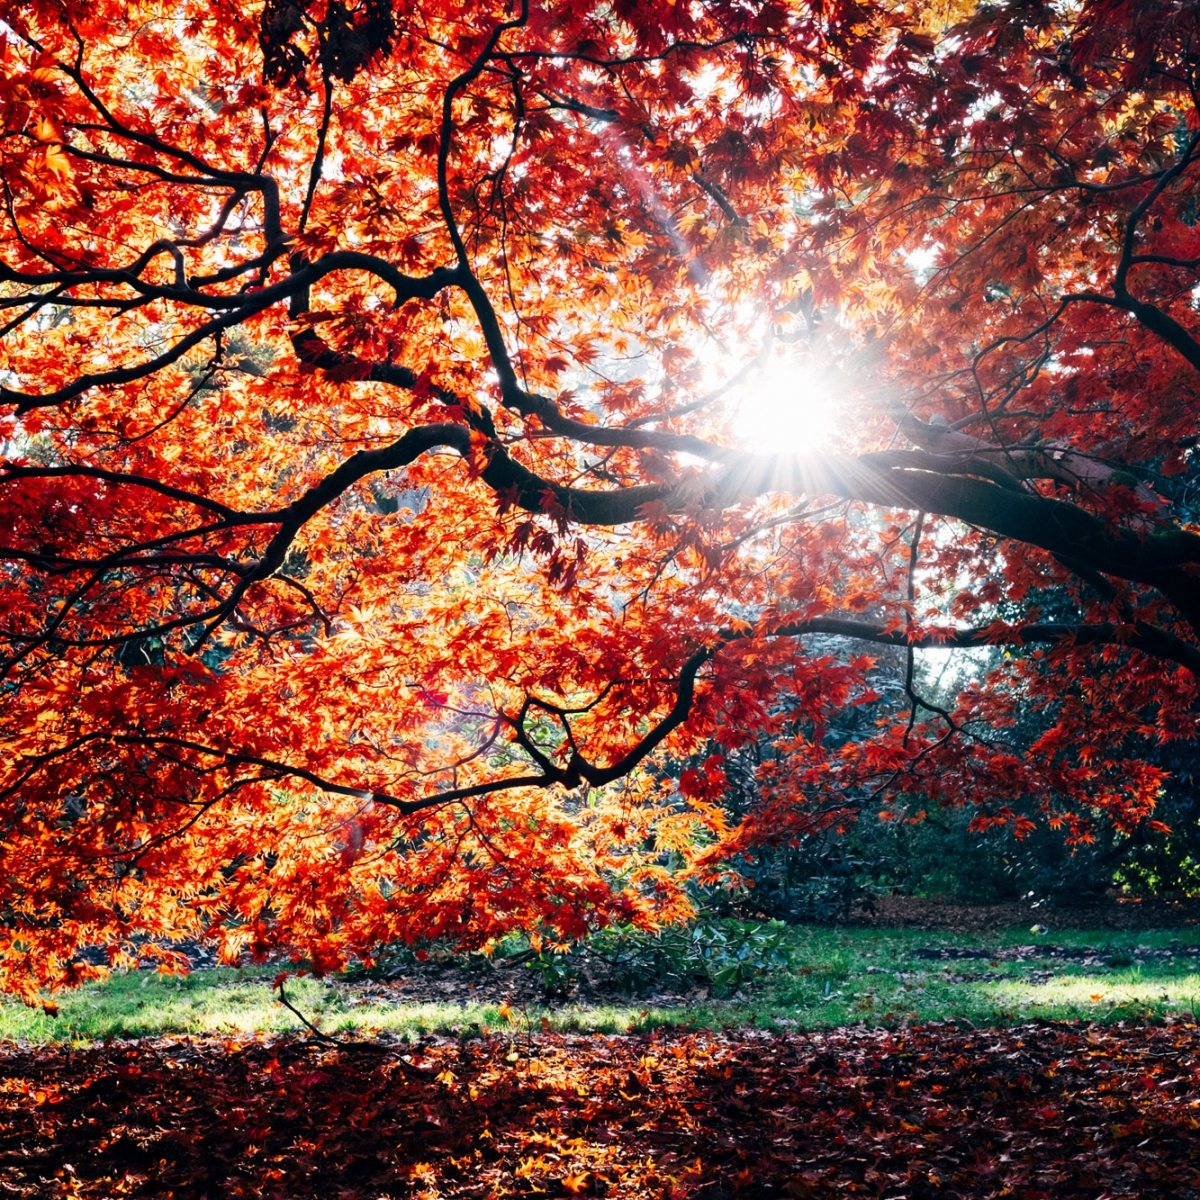 50 907 Free images of Autumn